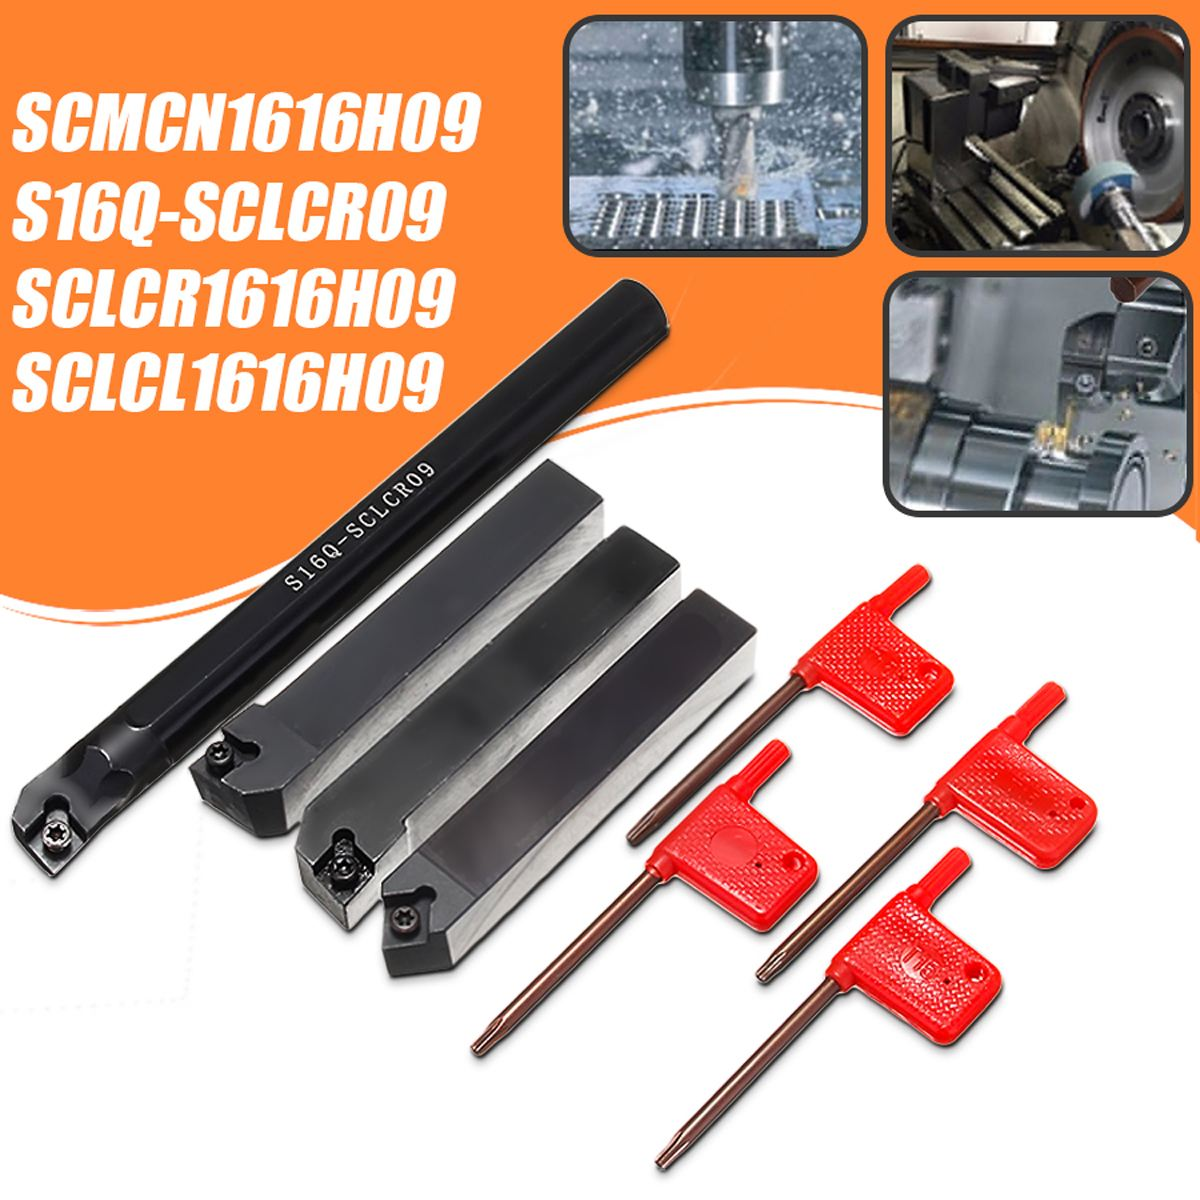 4 Set 16mm SCLCR Lathe Turning Tool Holder Boring Bar +4 pcs T15 Wrenches S16Q-SCLCR09/SCLCR1616H09/SCLCL1616H09/SCMCN1616H09 4set 16mm sclcr lathe turning tool holder boring bar s16q sclcr09 sclcr1616h09 sclcl1616h09 scmcn1616h09 4 pcs t15 wrenches